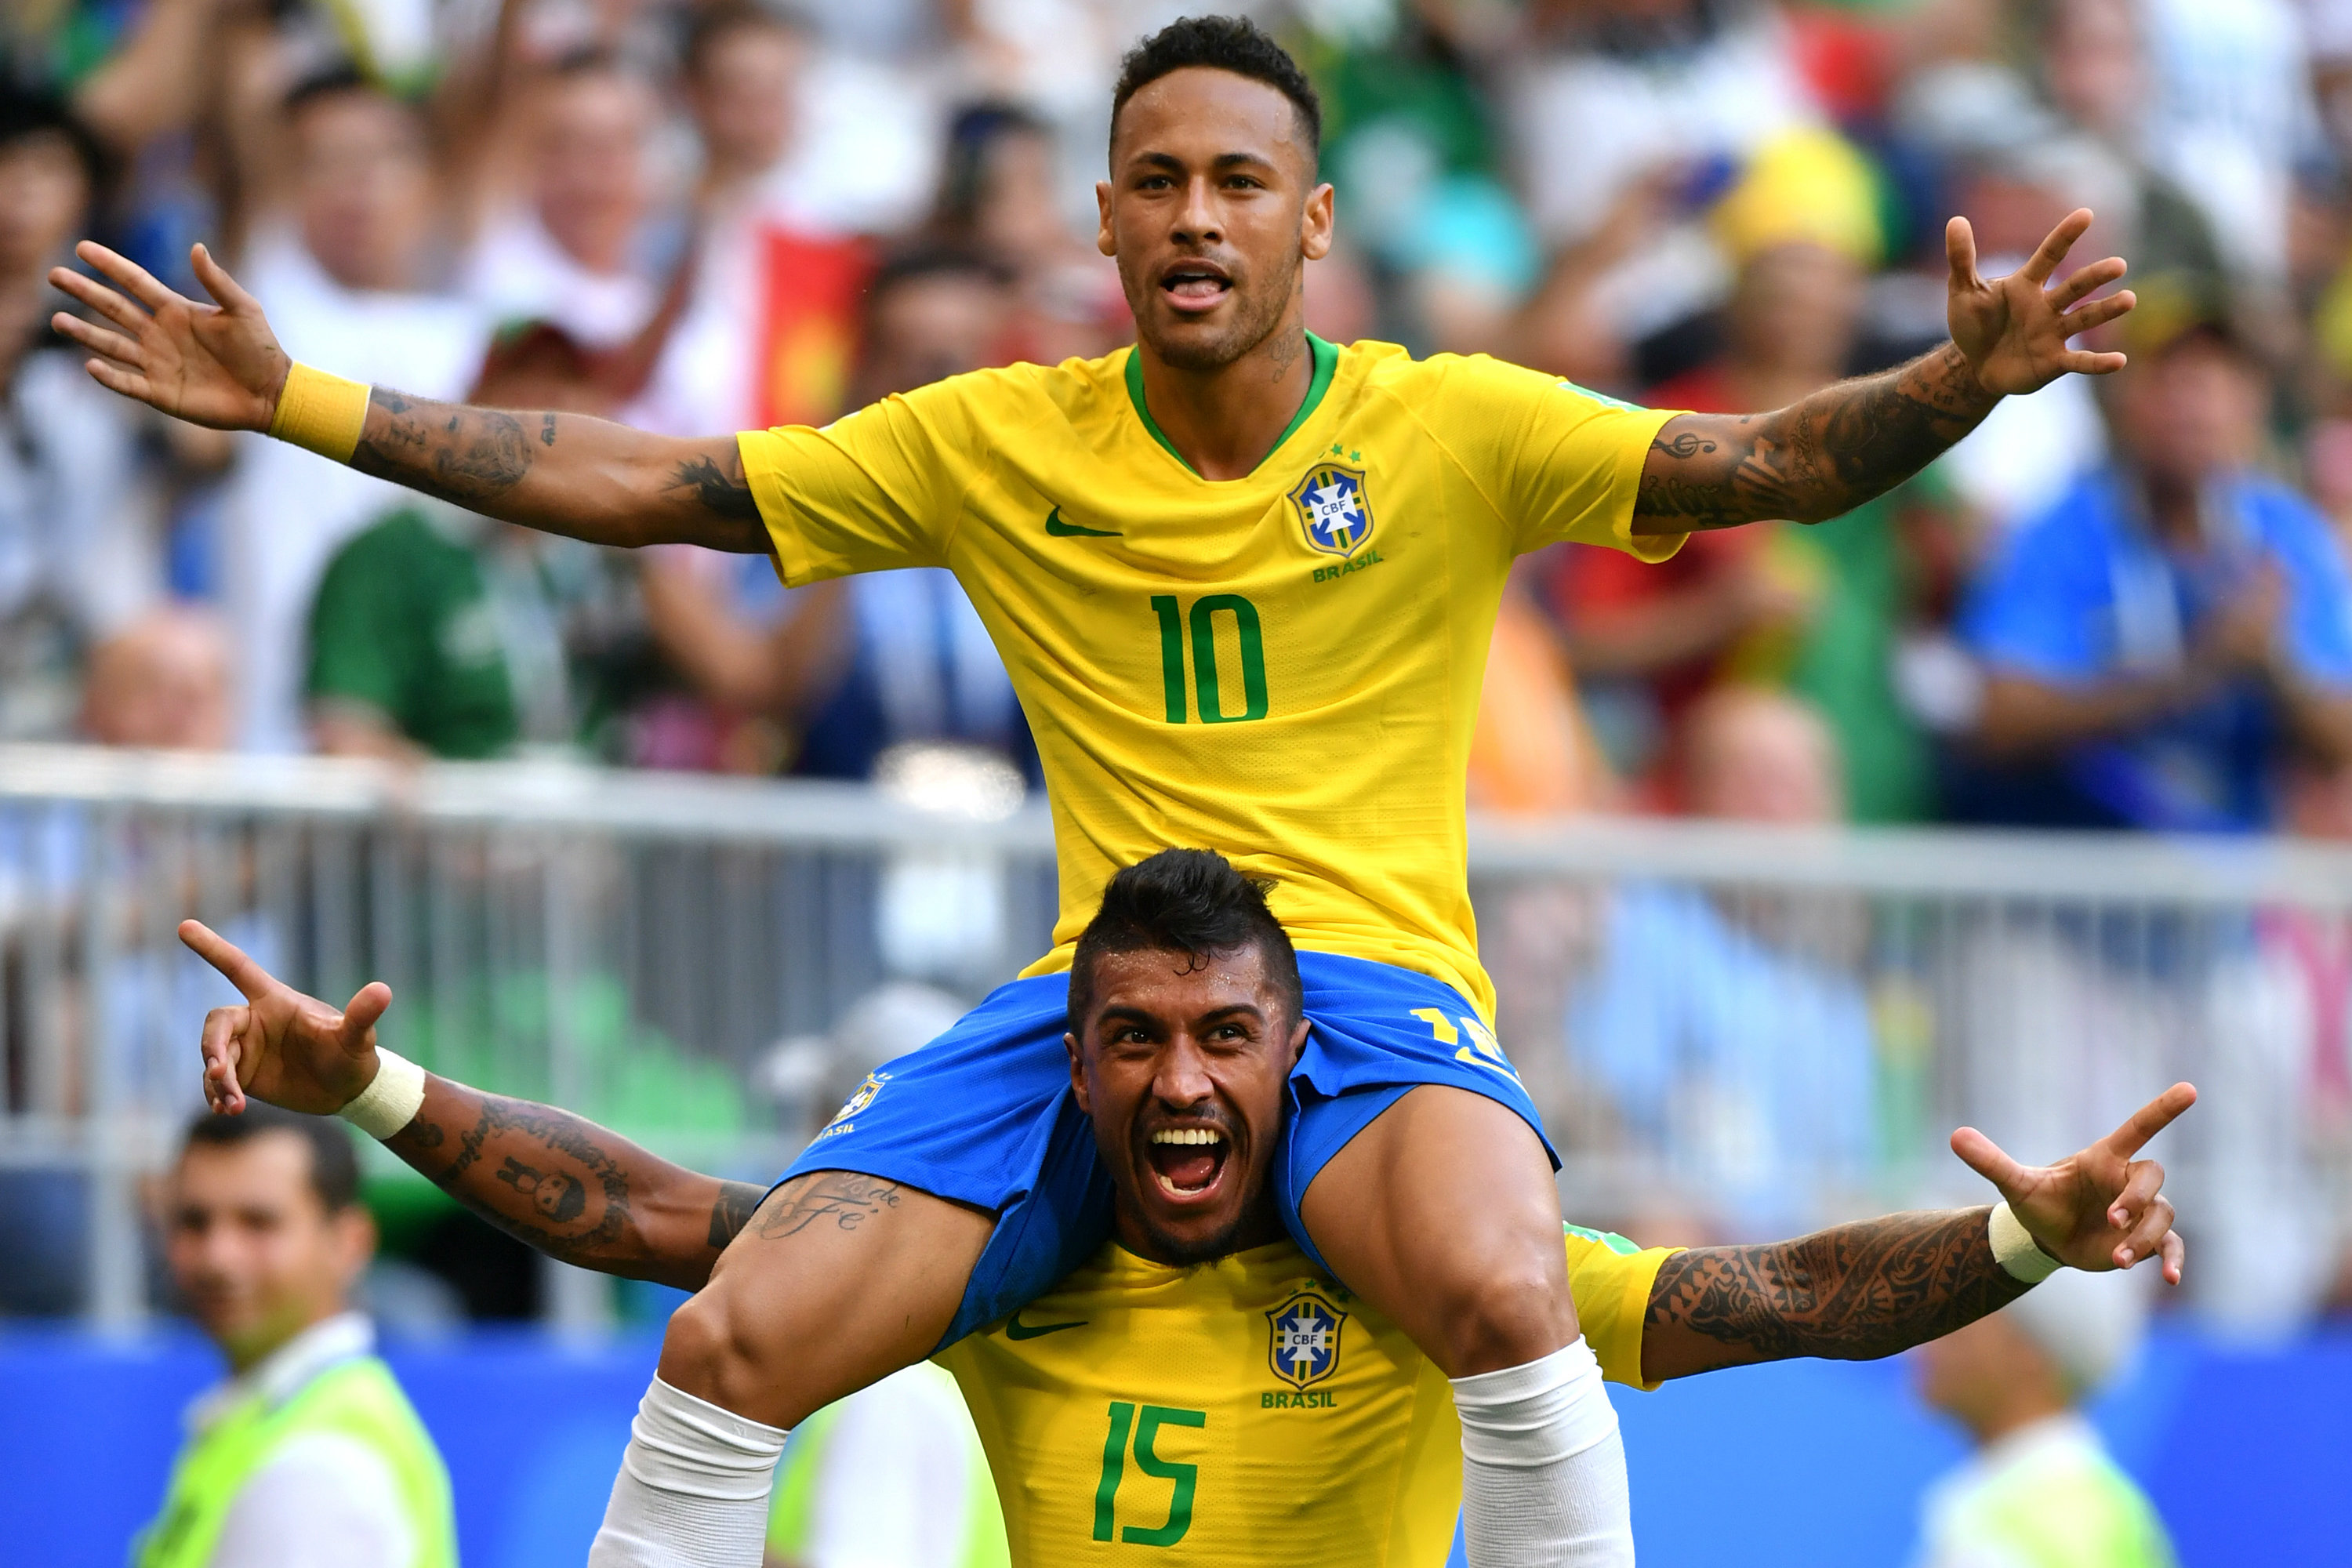 Paulinho and Neymar celebrate a goal for Brazil at the World Cup in Russia.